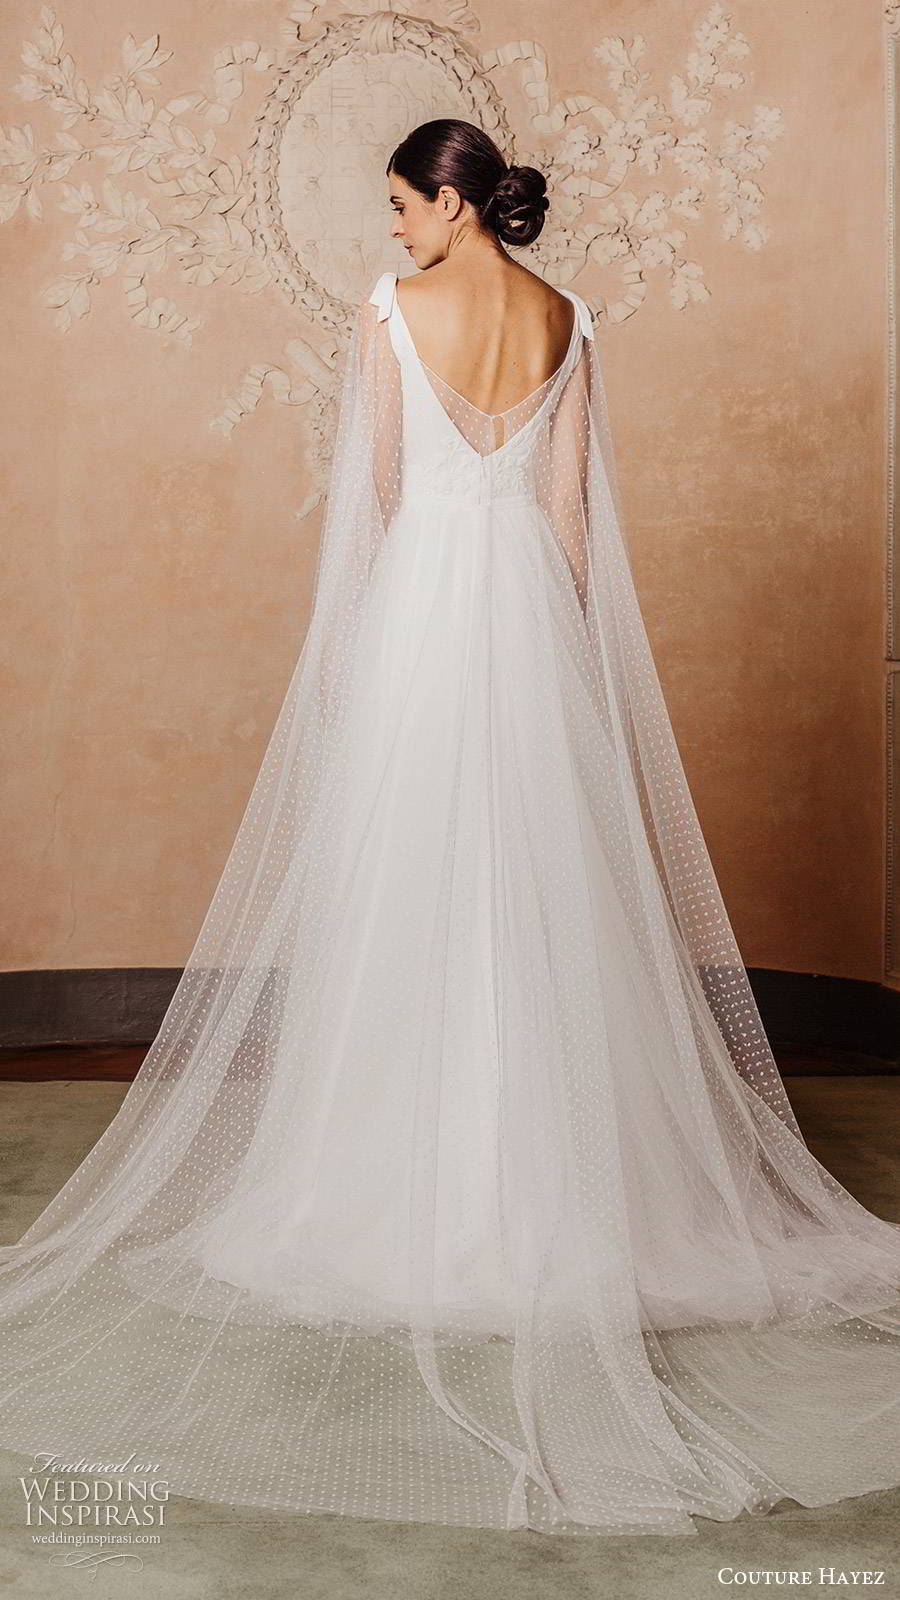 couture hayez 2020 bridal sleeveless thick straps semi sweetheart embellished bodice ball gown a line wedding dress (6) elegant romantic v back chapel train sheer cape bv